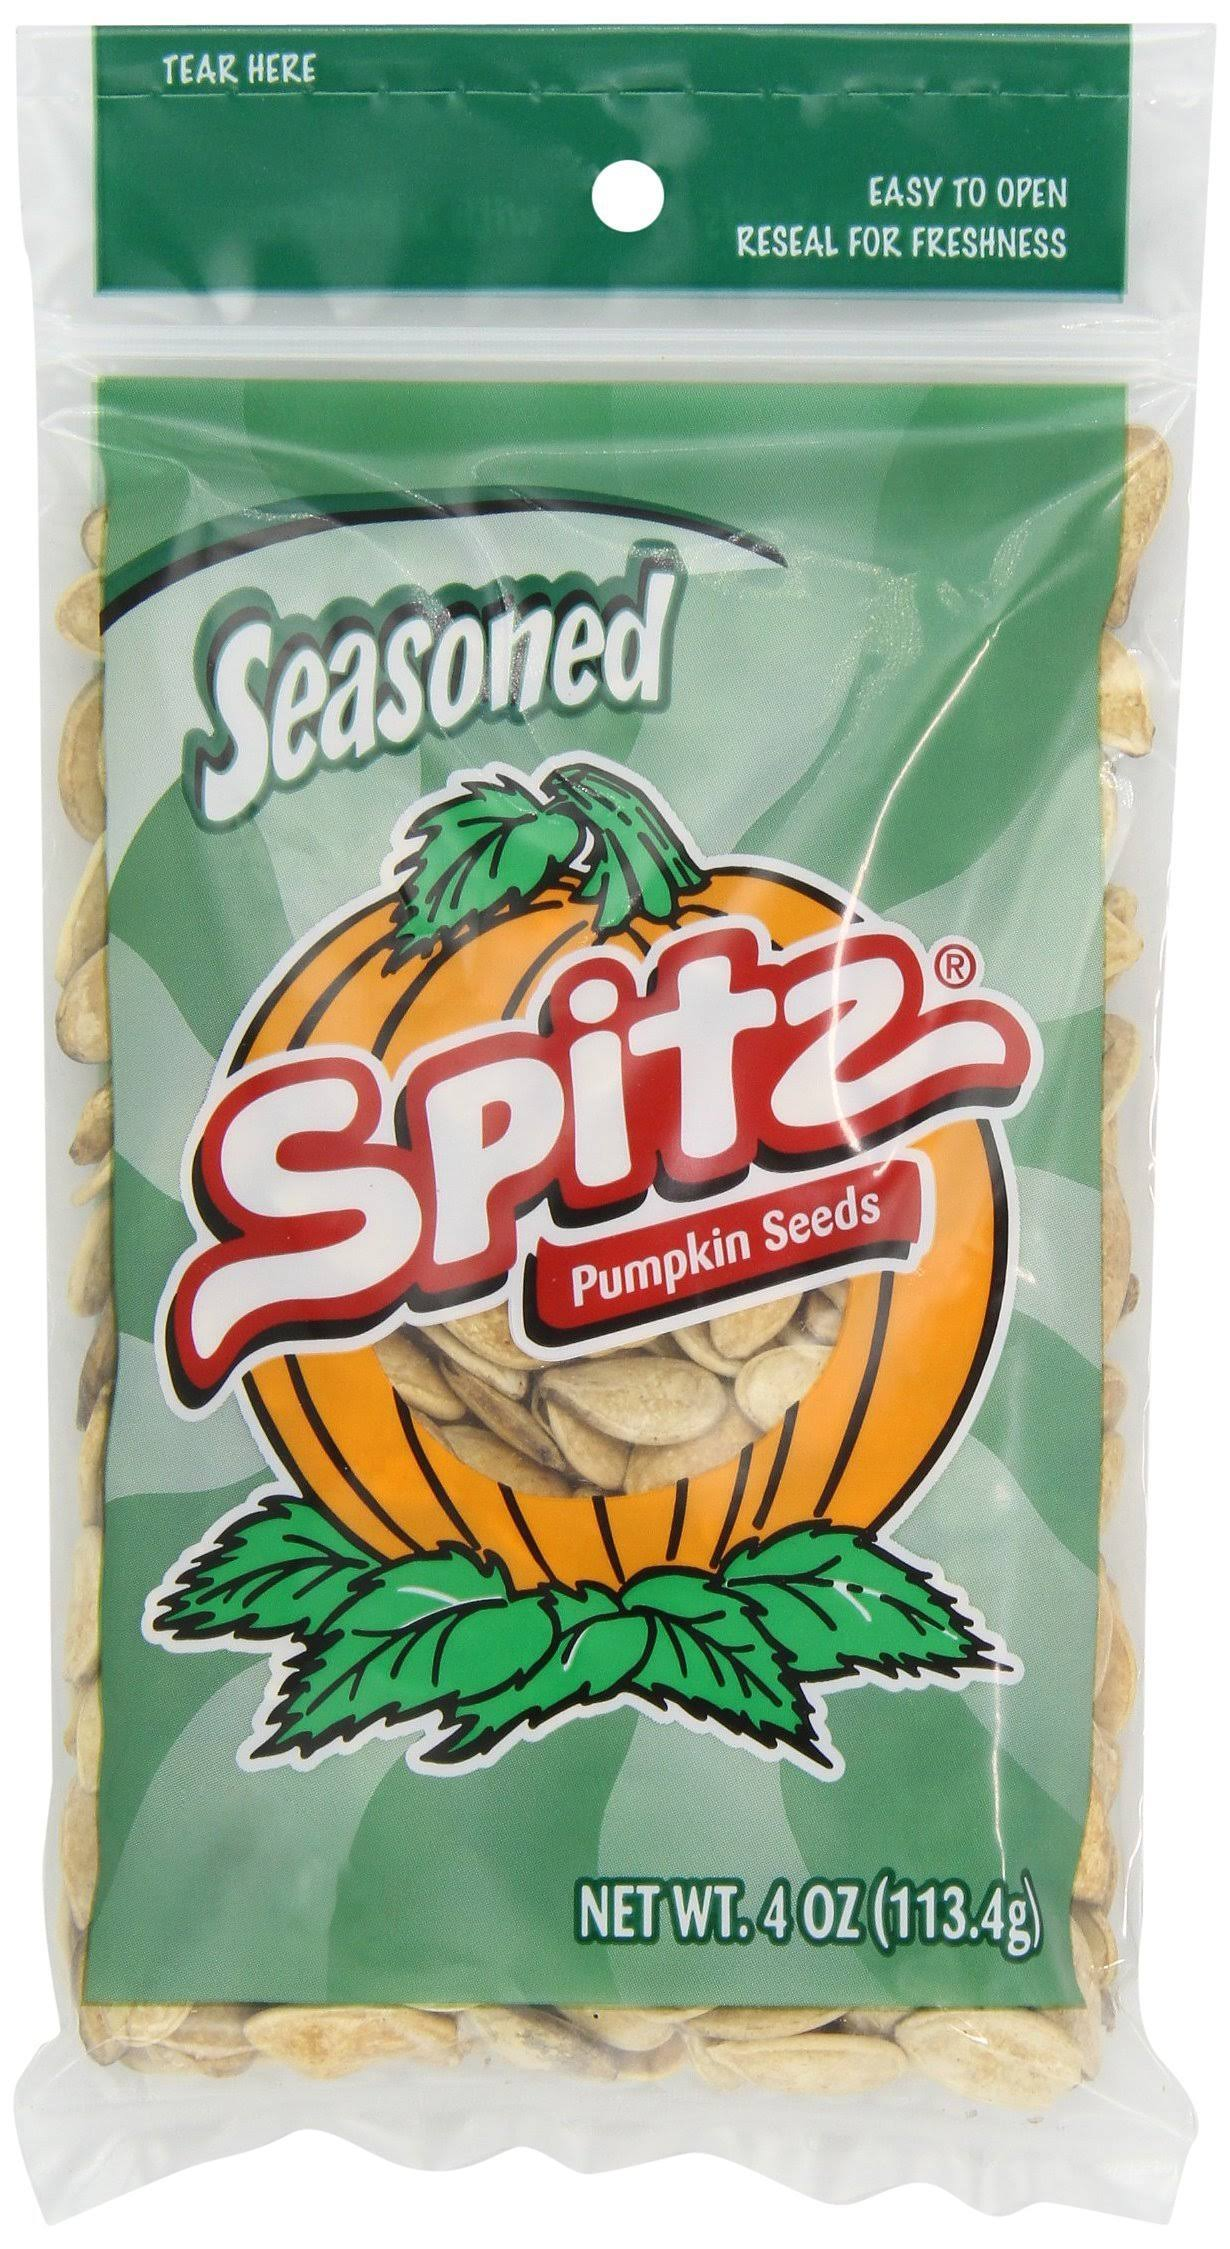 Spitz Pumpkin Seeds - 4oz, Seasoned